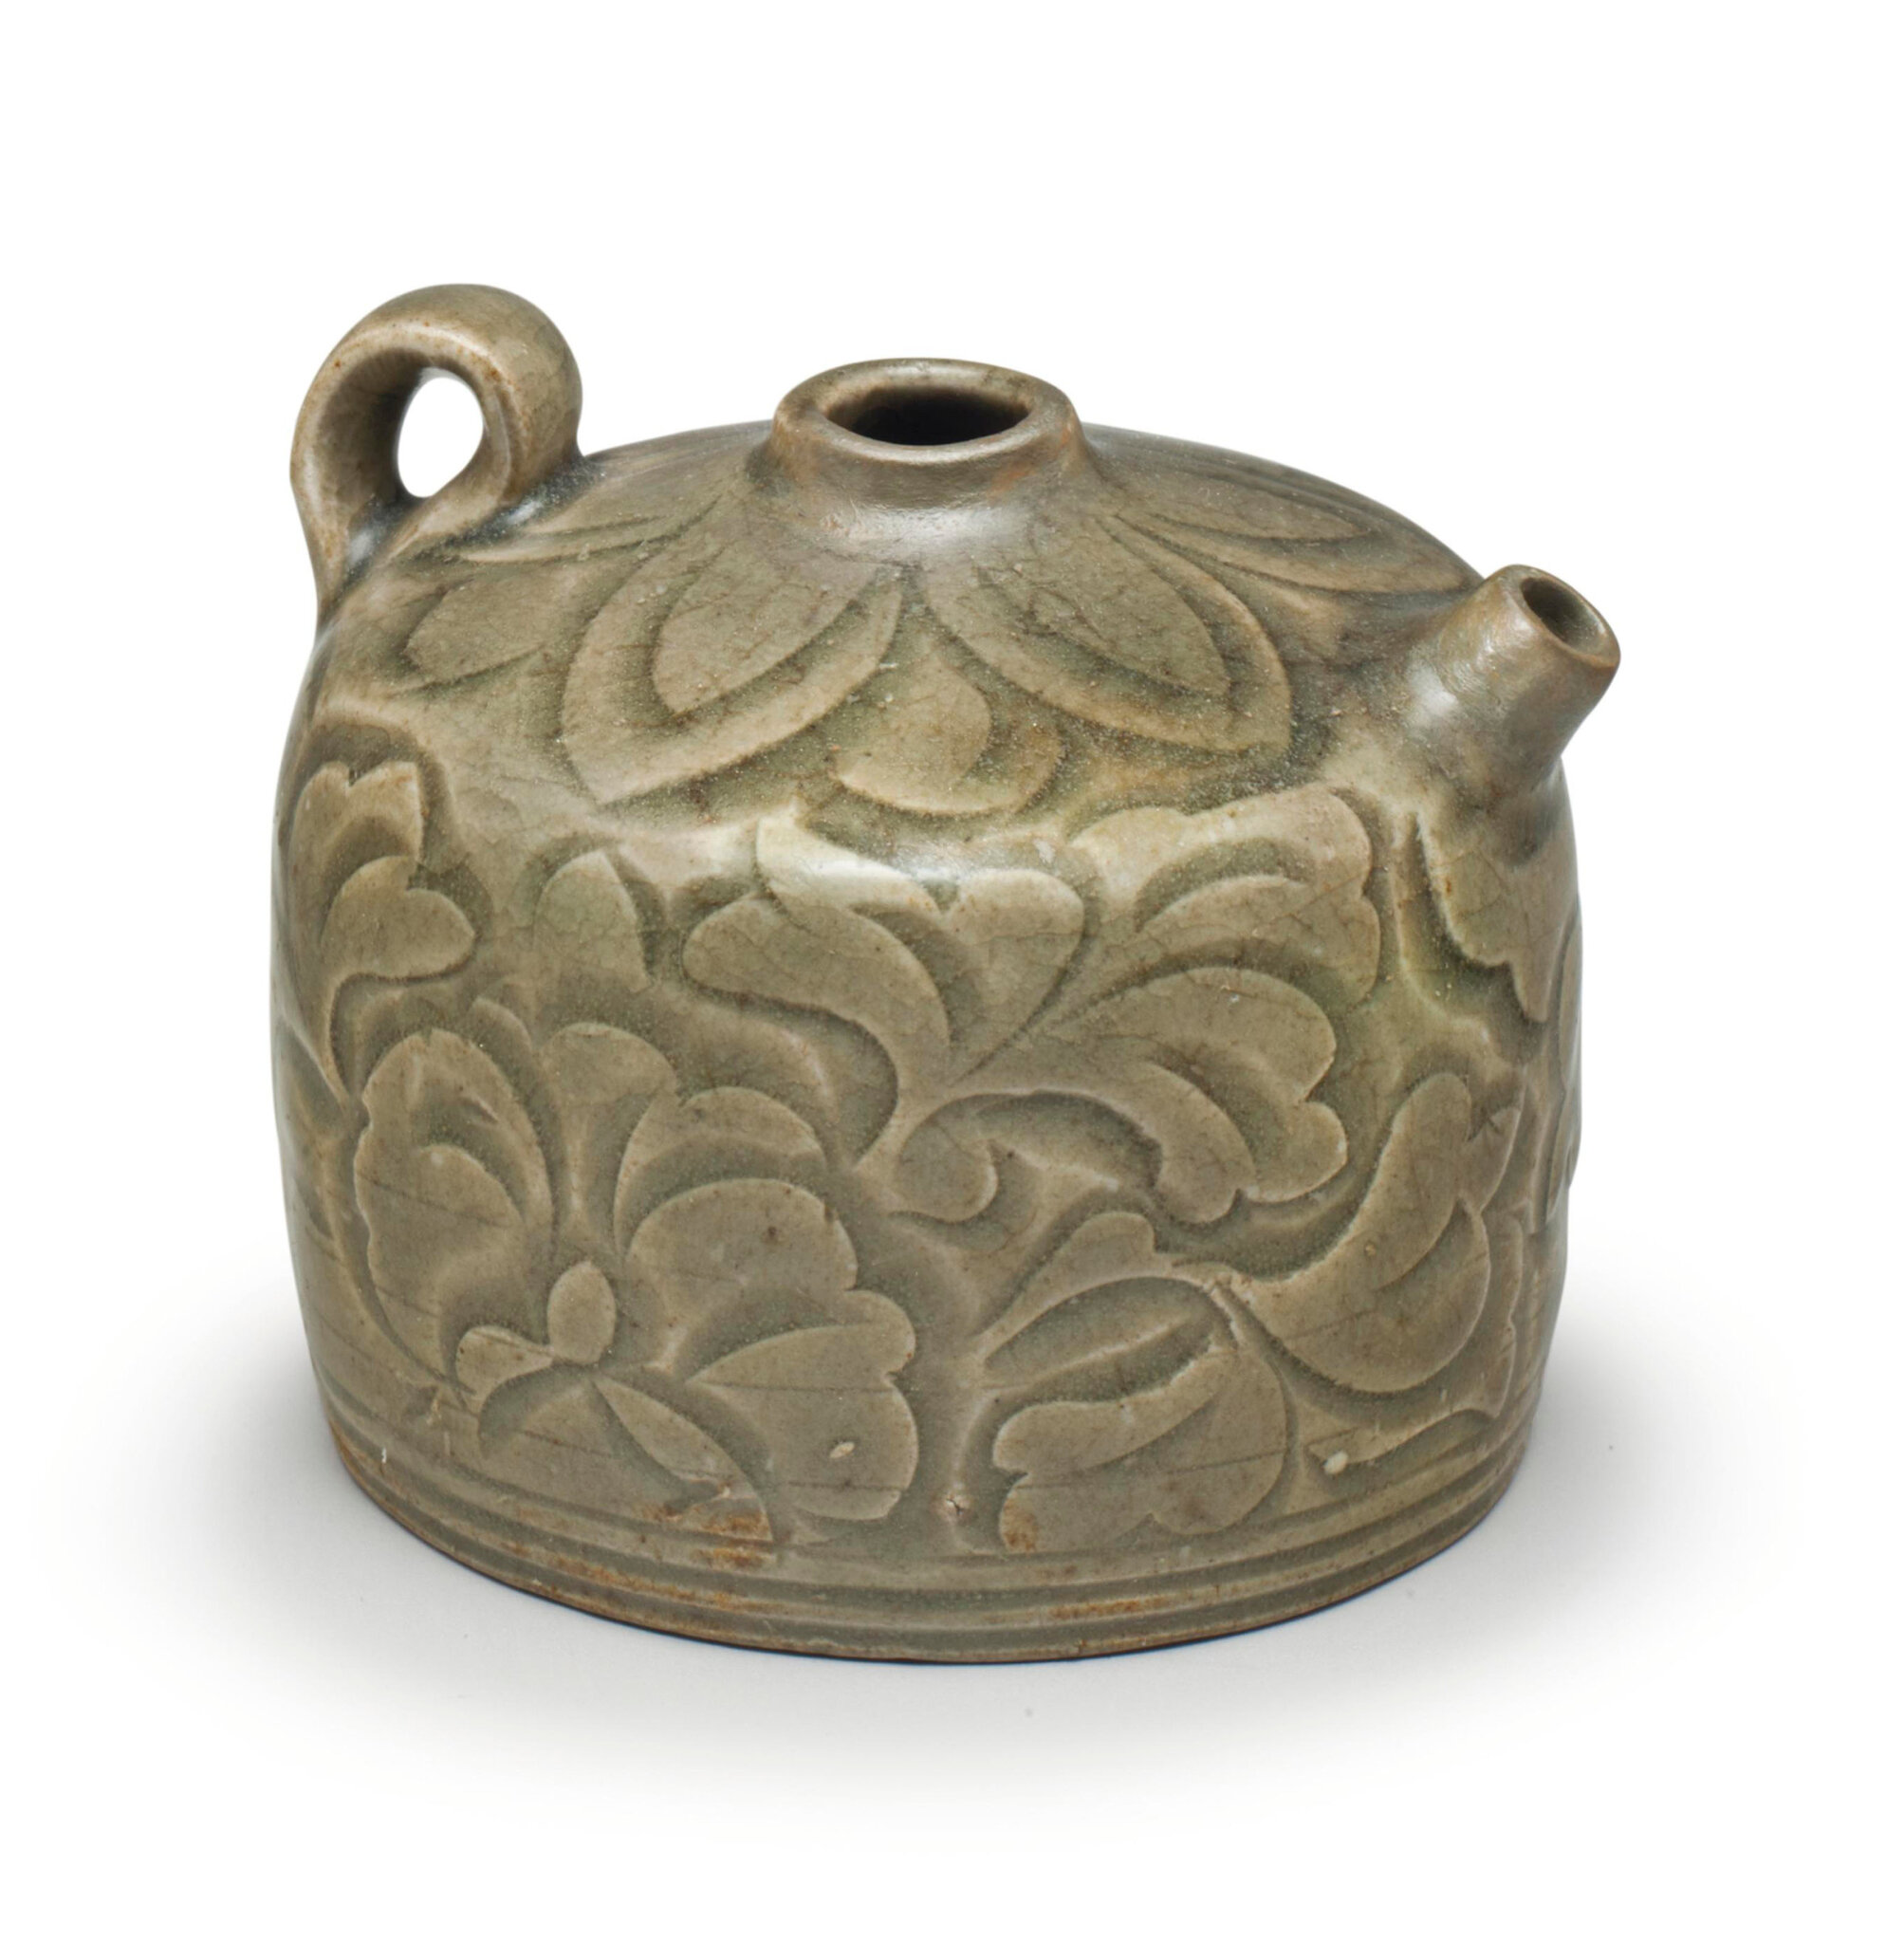 A rare small Yaozhou celadon carved ewer, Northern Song-Jin dynasty (960-1234)